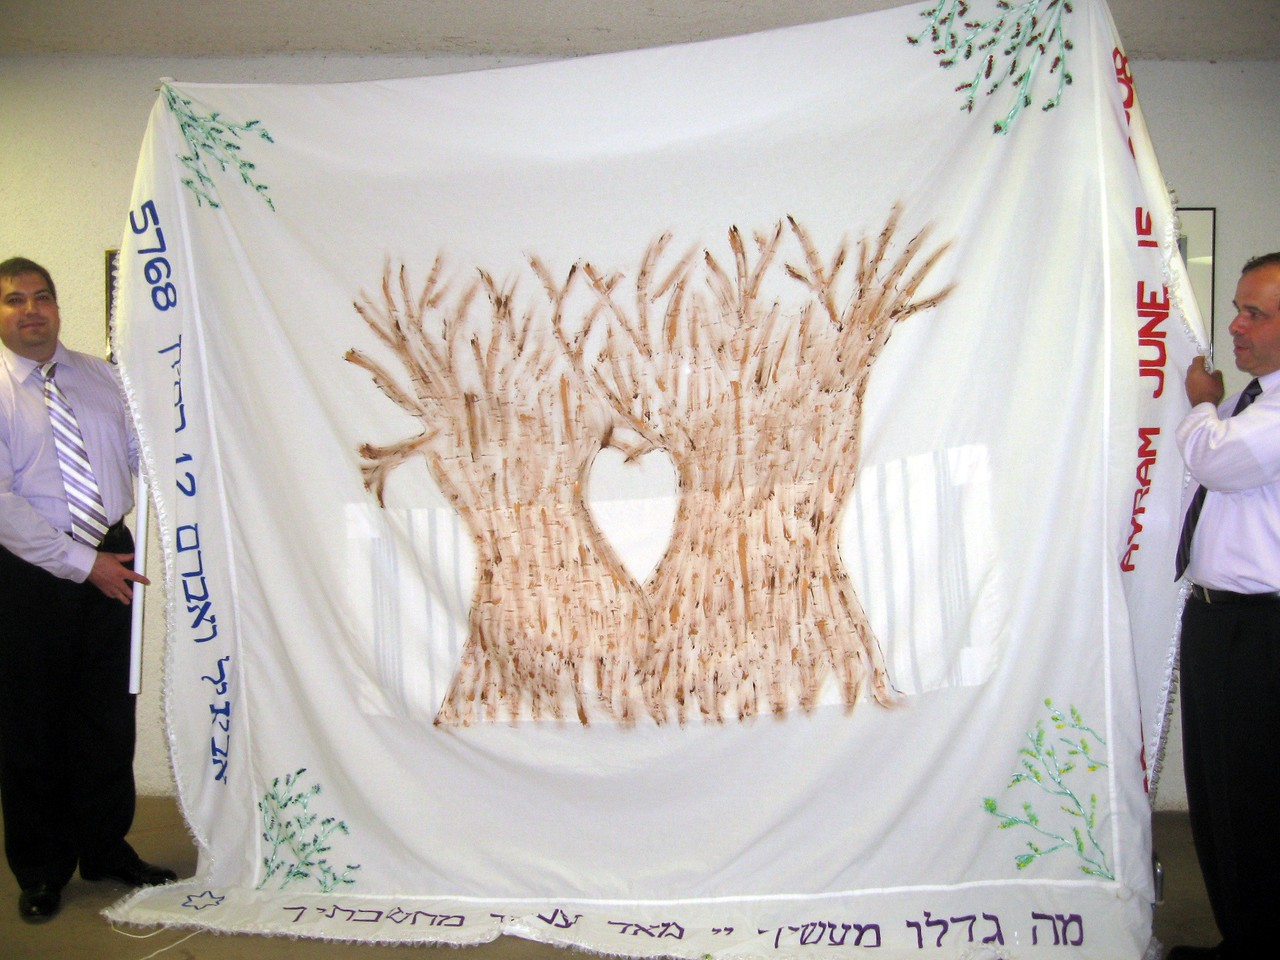 Craig (brother of the bride) and Gary (father of the bride) hold the chuppah, which was made by Karen (friend of the bride) and includes a tallit worn by Abby's grandfather and namesake, Victor